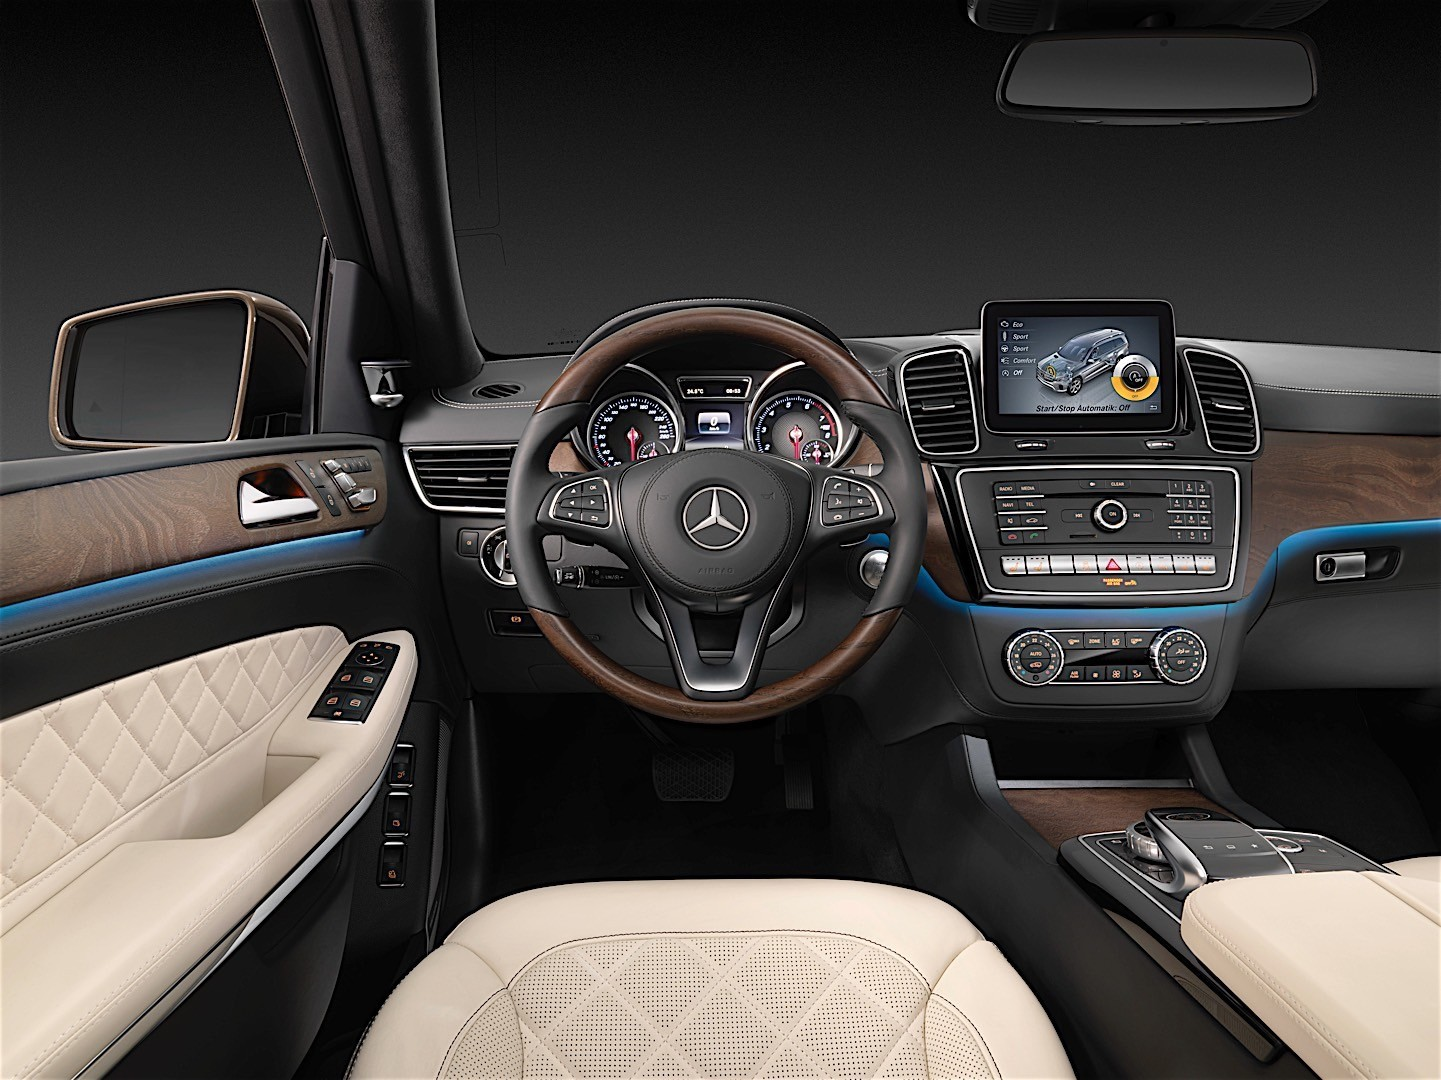 Mercedes Benz Dealers In Nj >> New Jersey Dealer Sued After Refusing To Sell A Mercedes